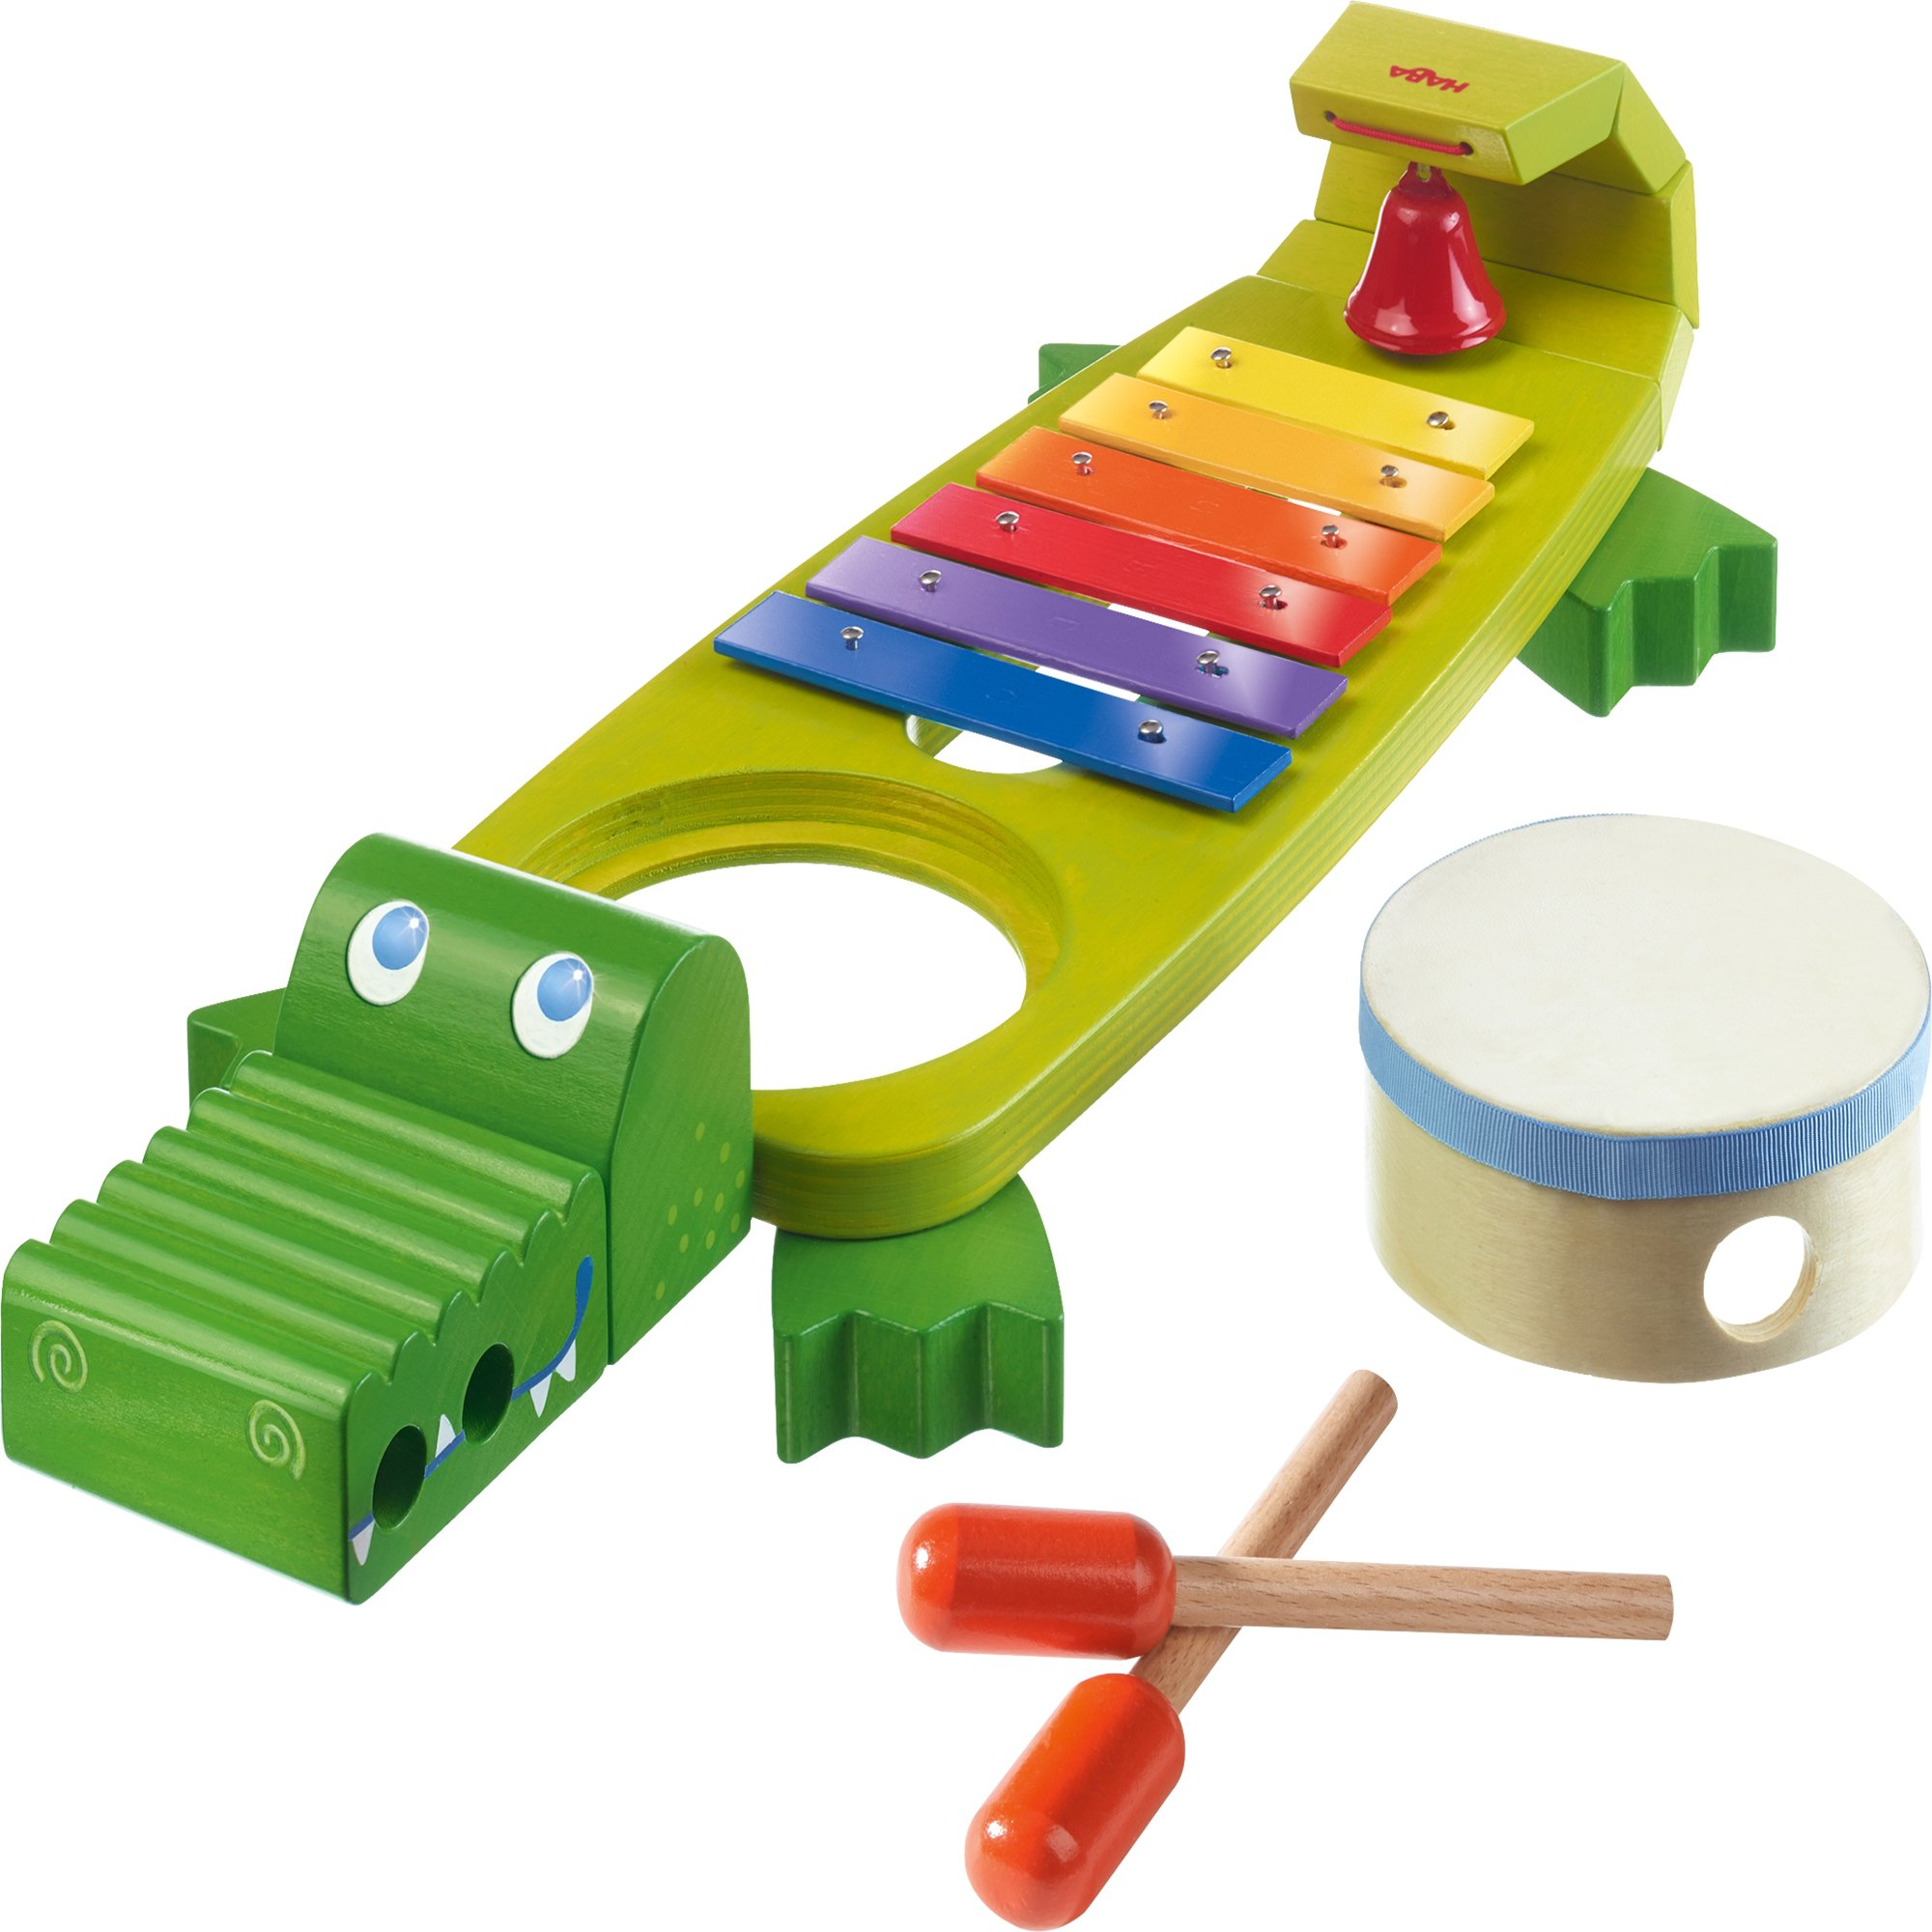 HABA Symphony Croc Music Band Set with 4 Instruments for Ages 2 and Up by HABA